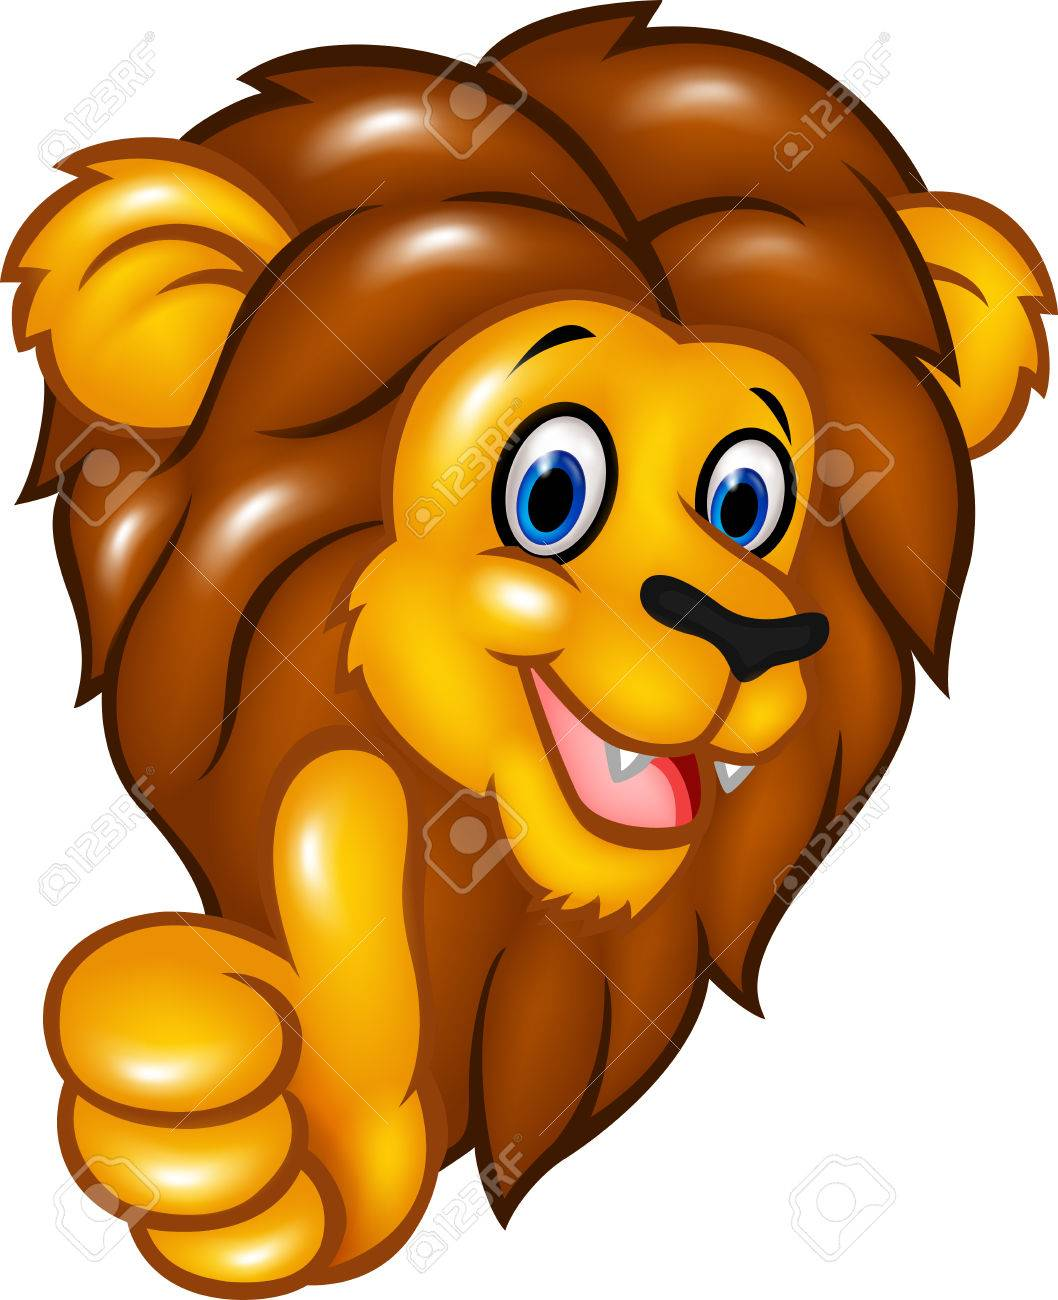 Vector illustration of Happy lion mascot giving thumbs up.